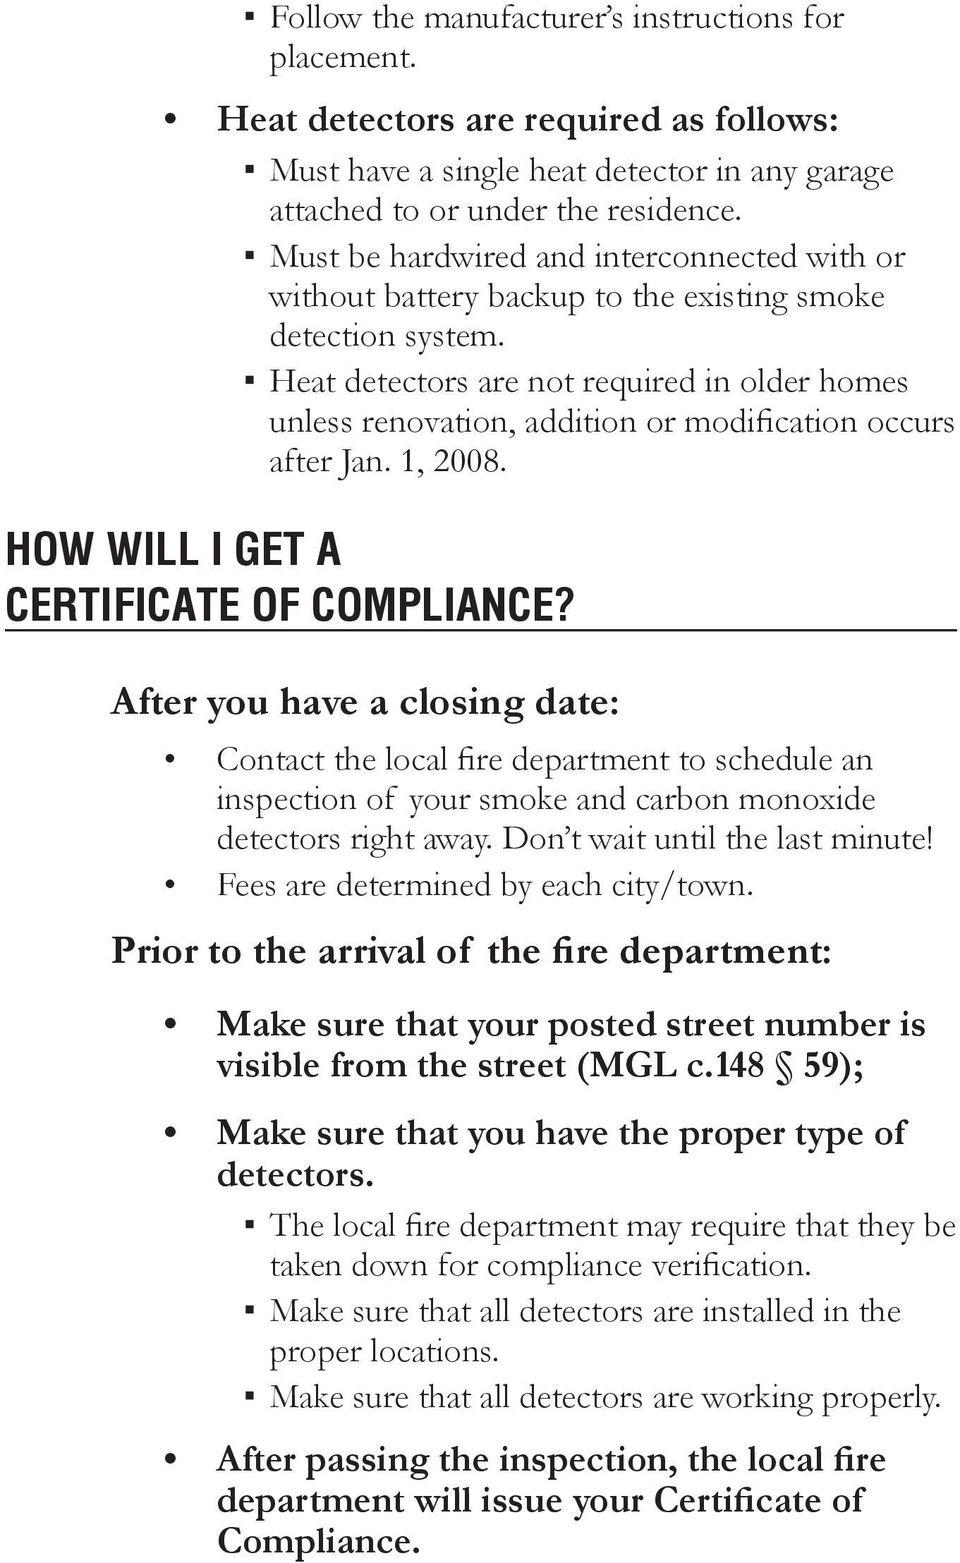 Heat detectors are not required in older homes unless renovation, addition or modification occurs after Jan. 1, 2008. How Will I Get a Certificate of Compliance?